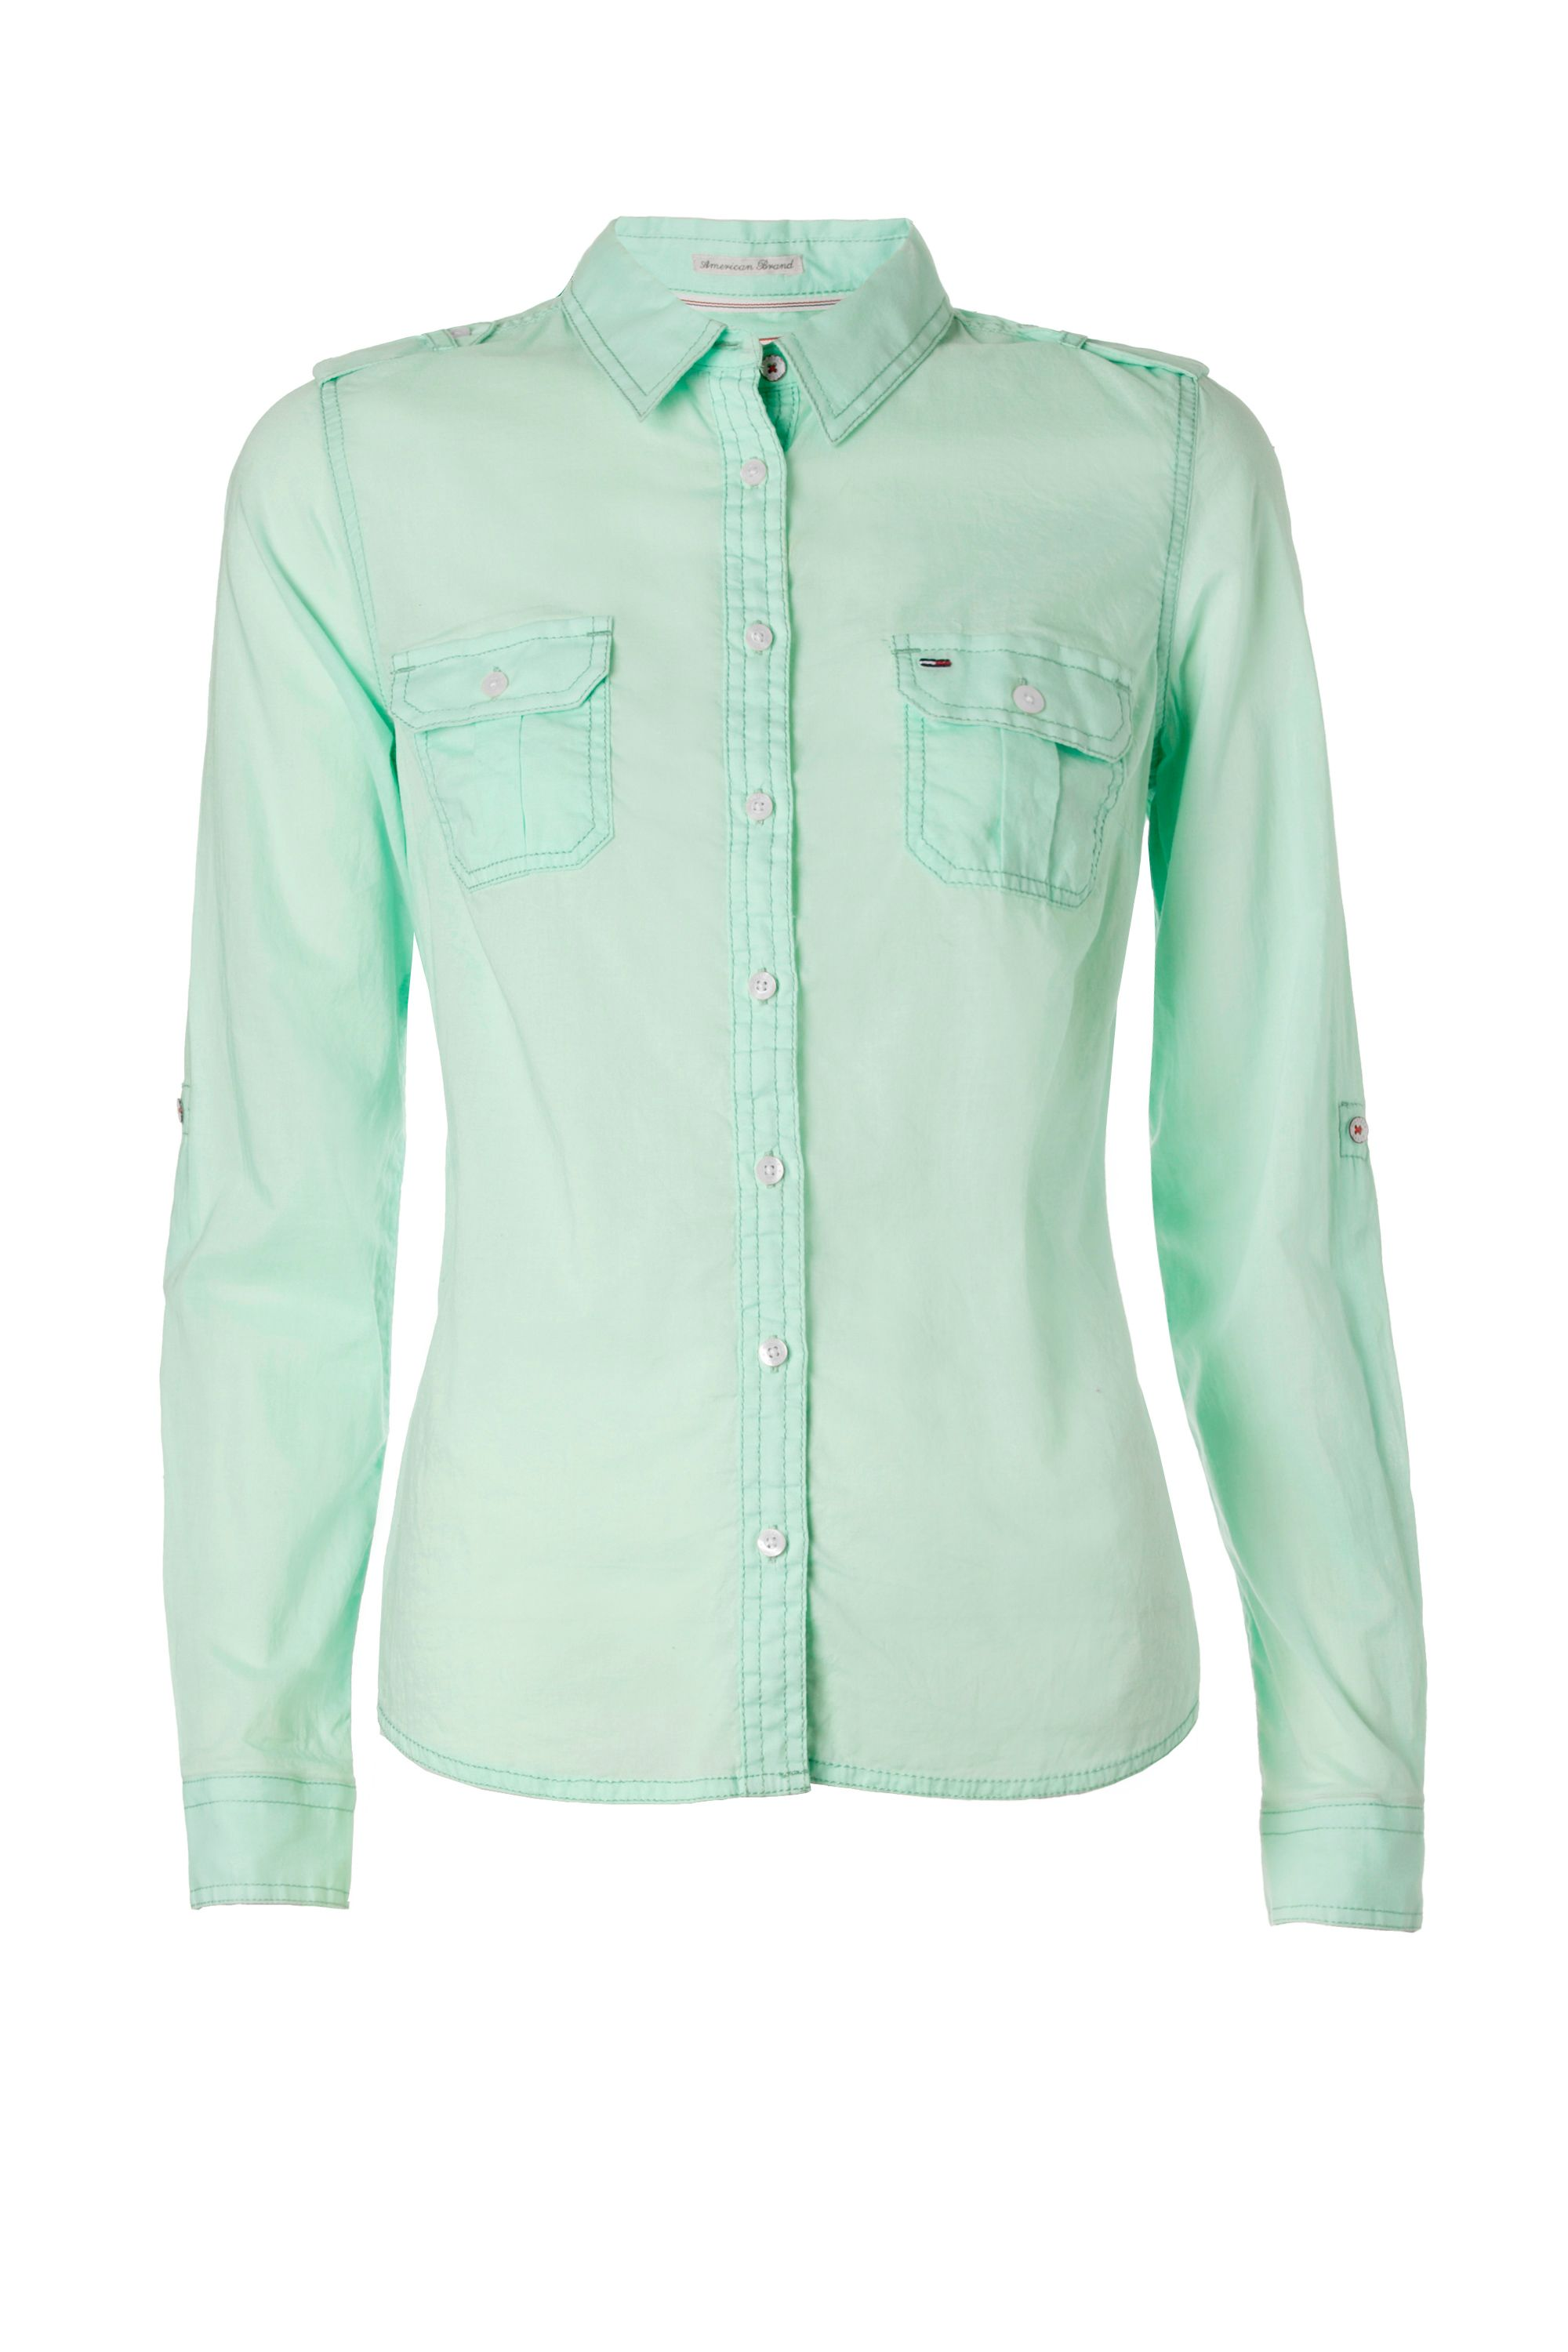 Fala long sleeve shirt